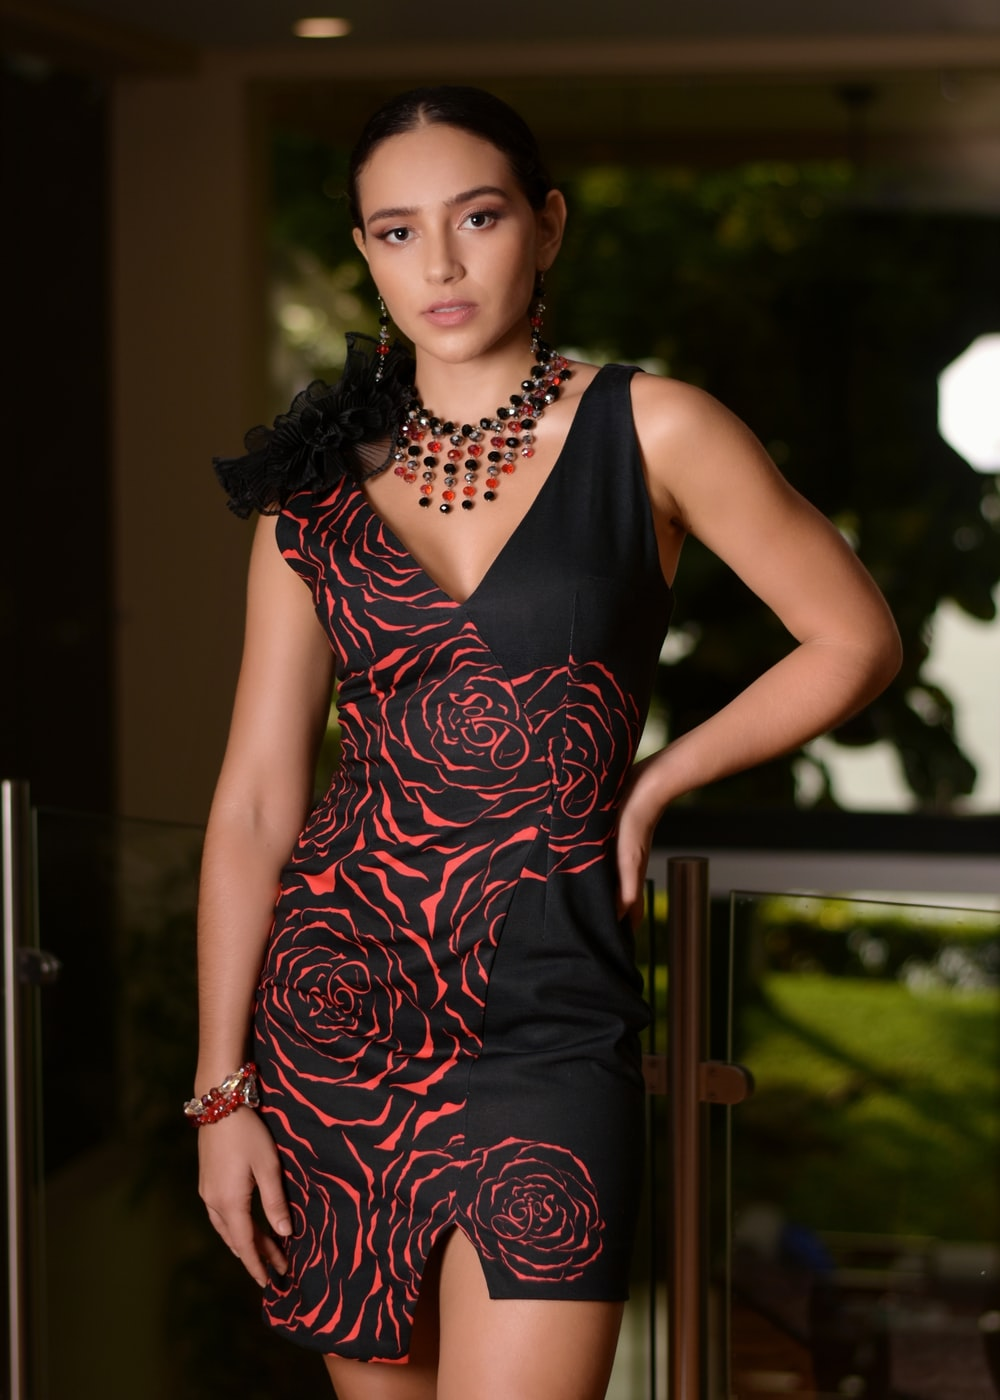 woman in black and red floral sleeveless dress